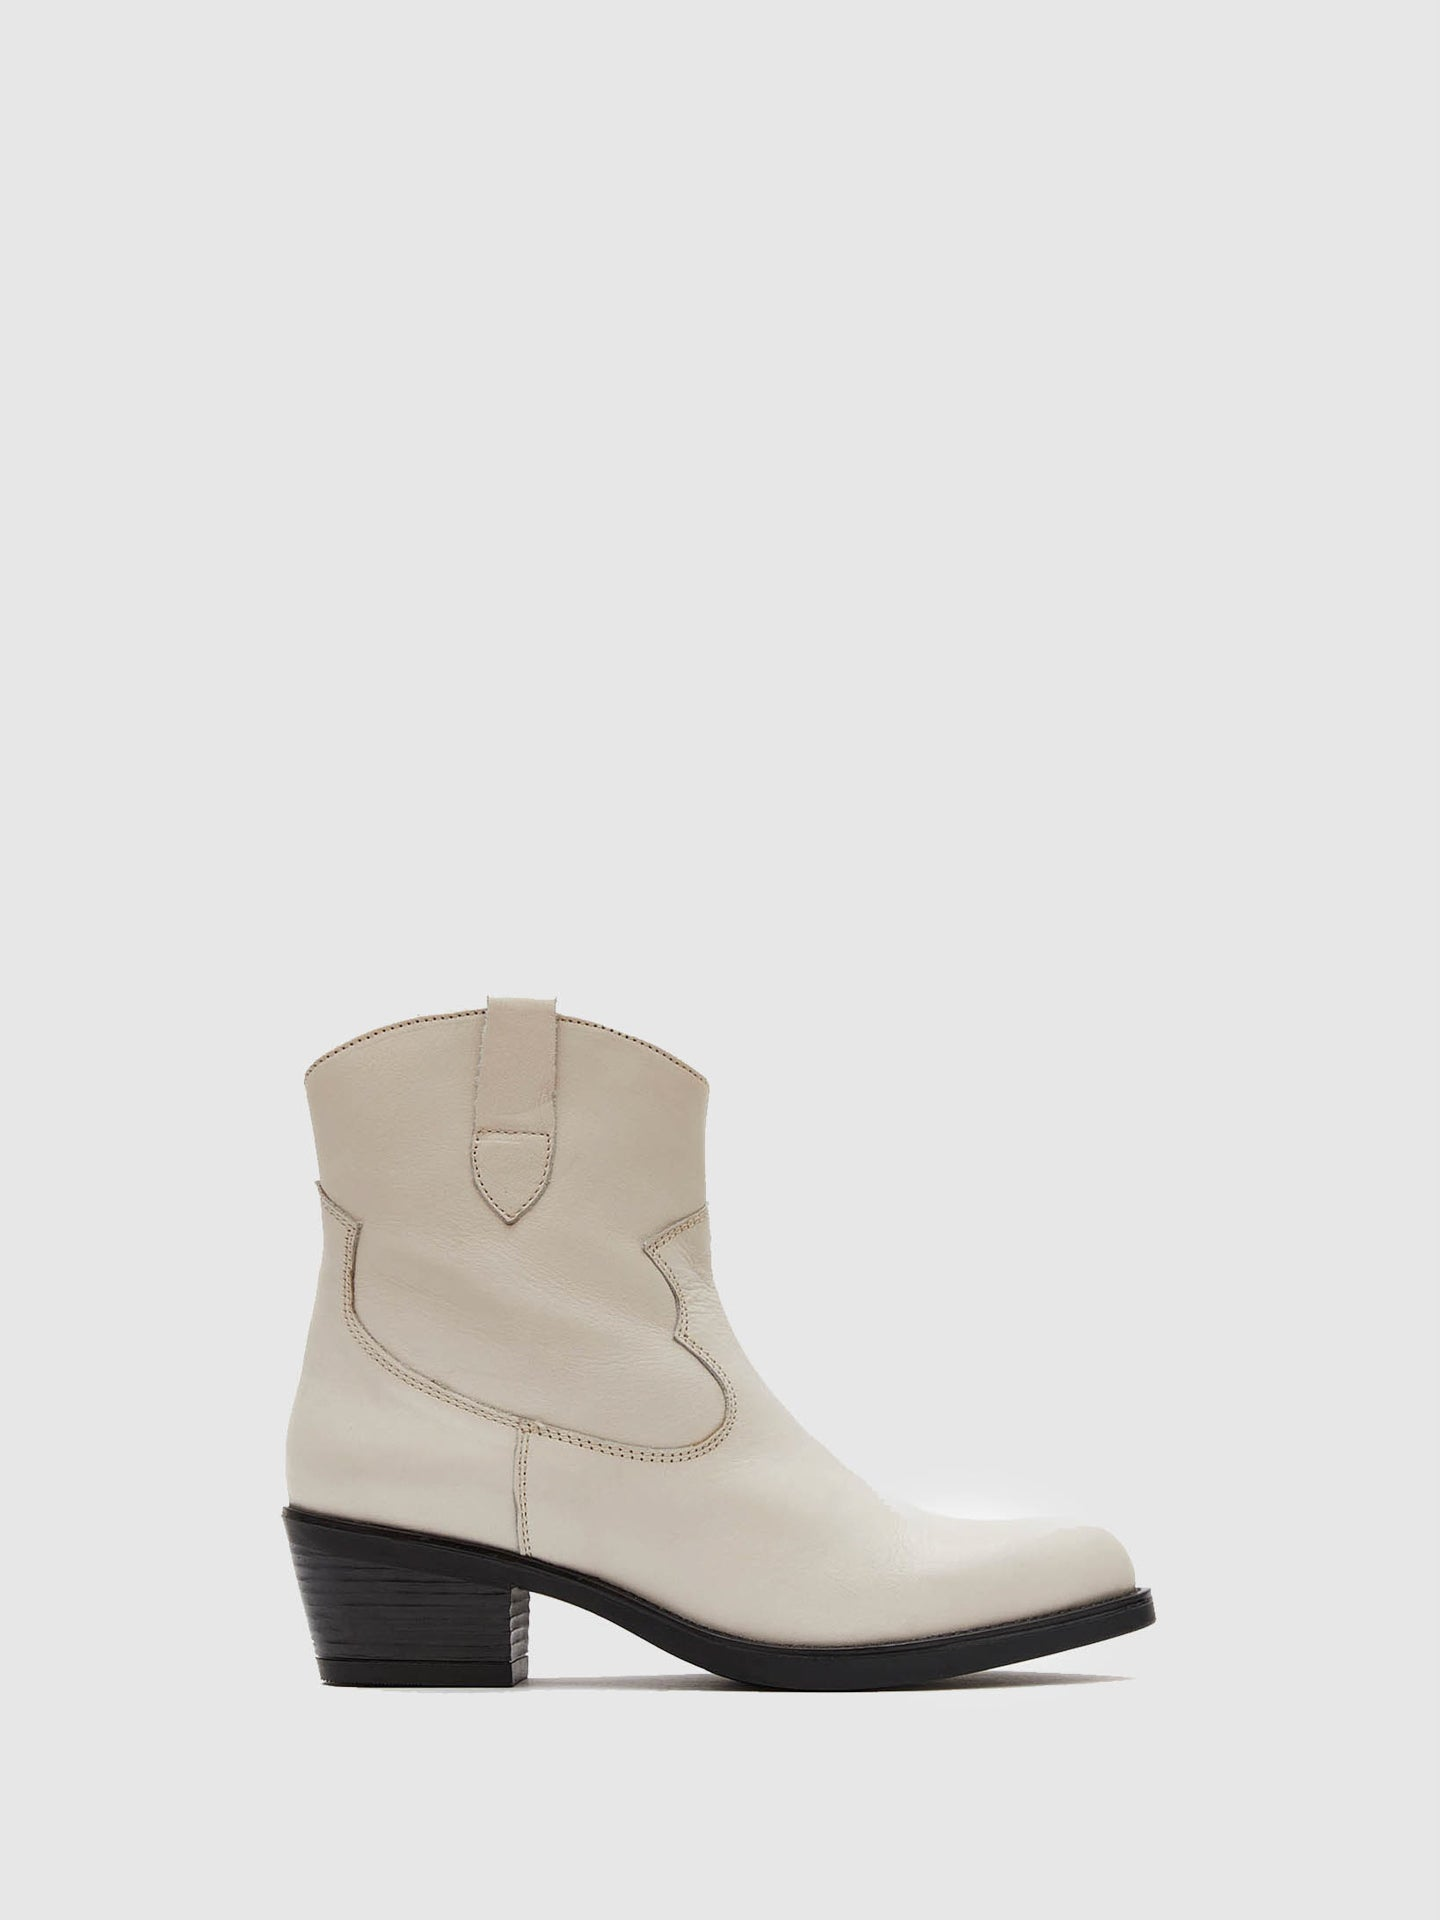 Marila Shoes White Round Toe Boots